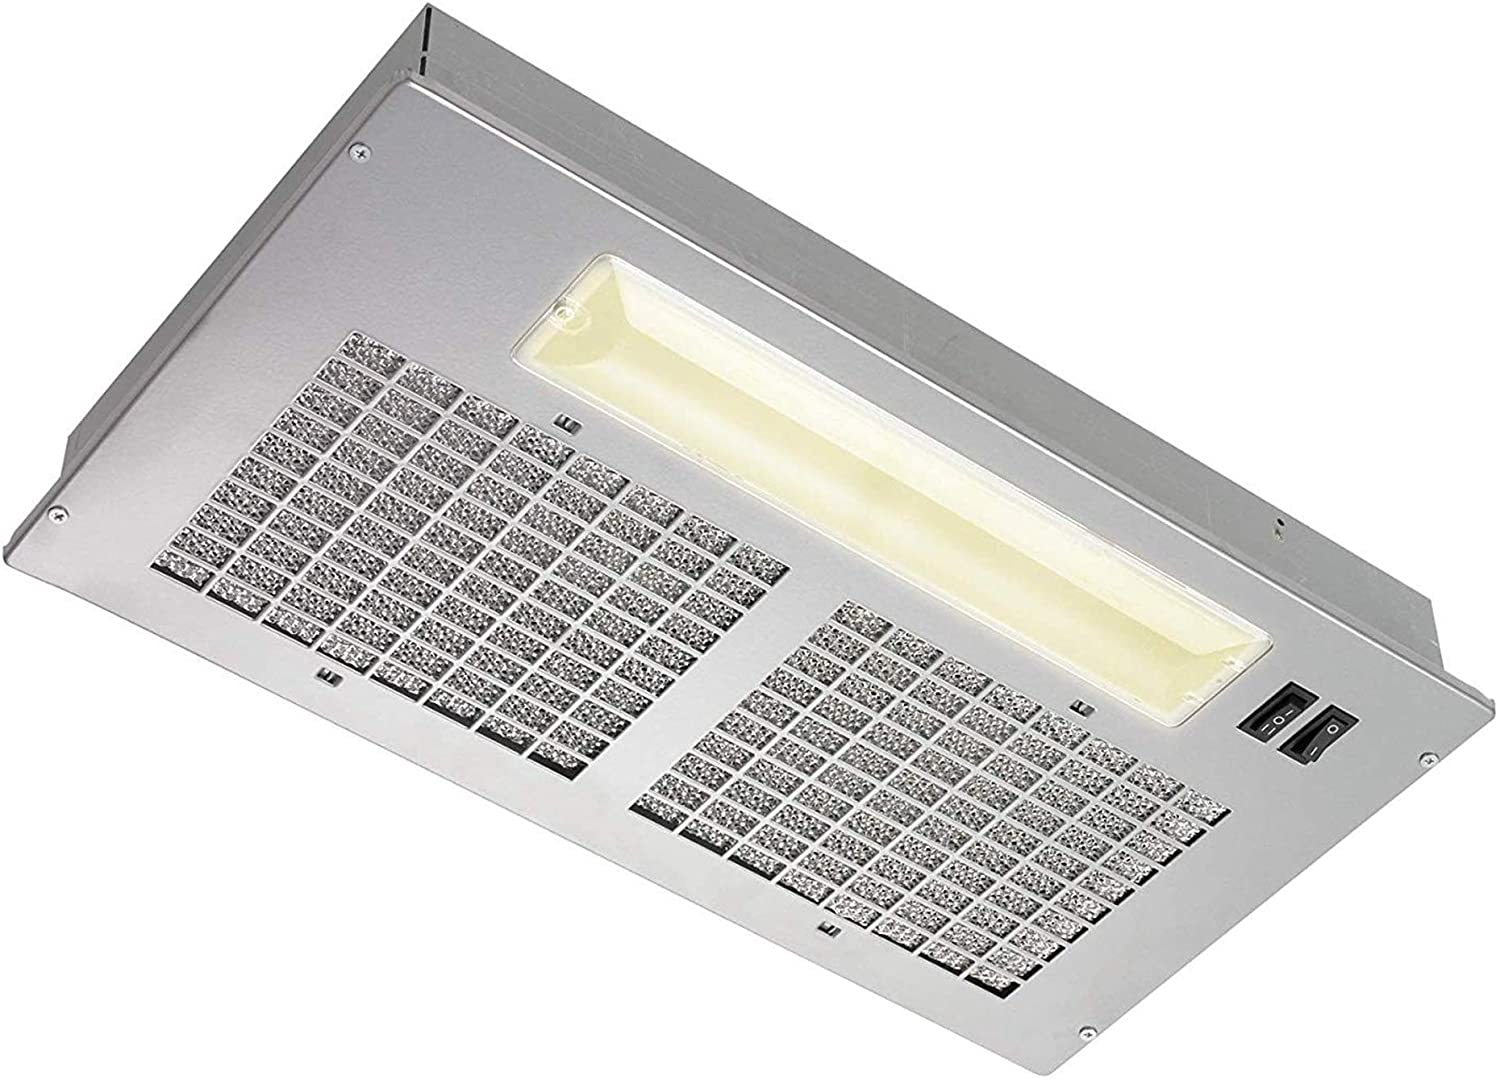 Broan Aluminum Power Pack Range Hood Insert